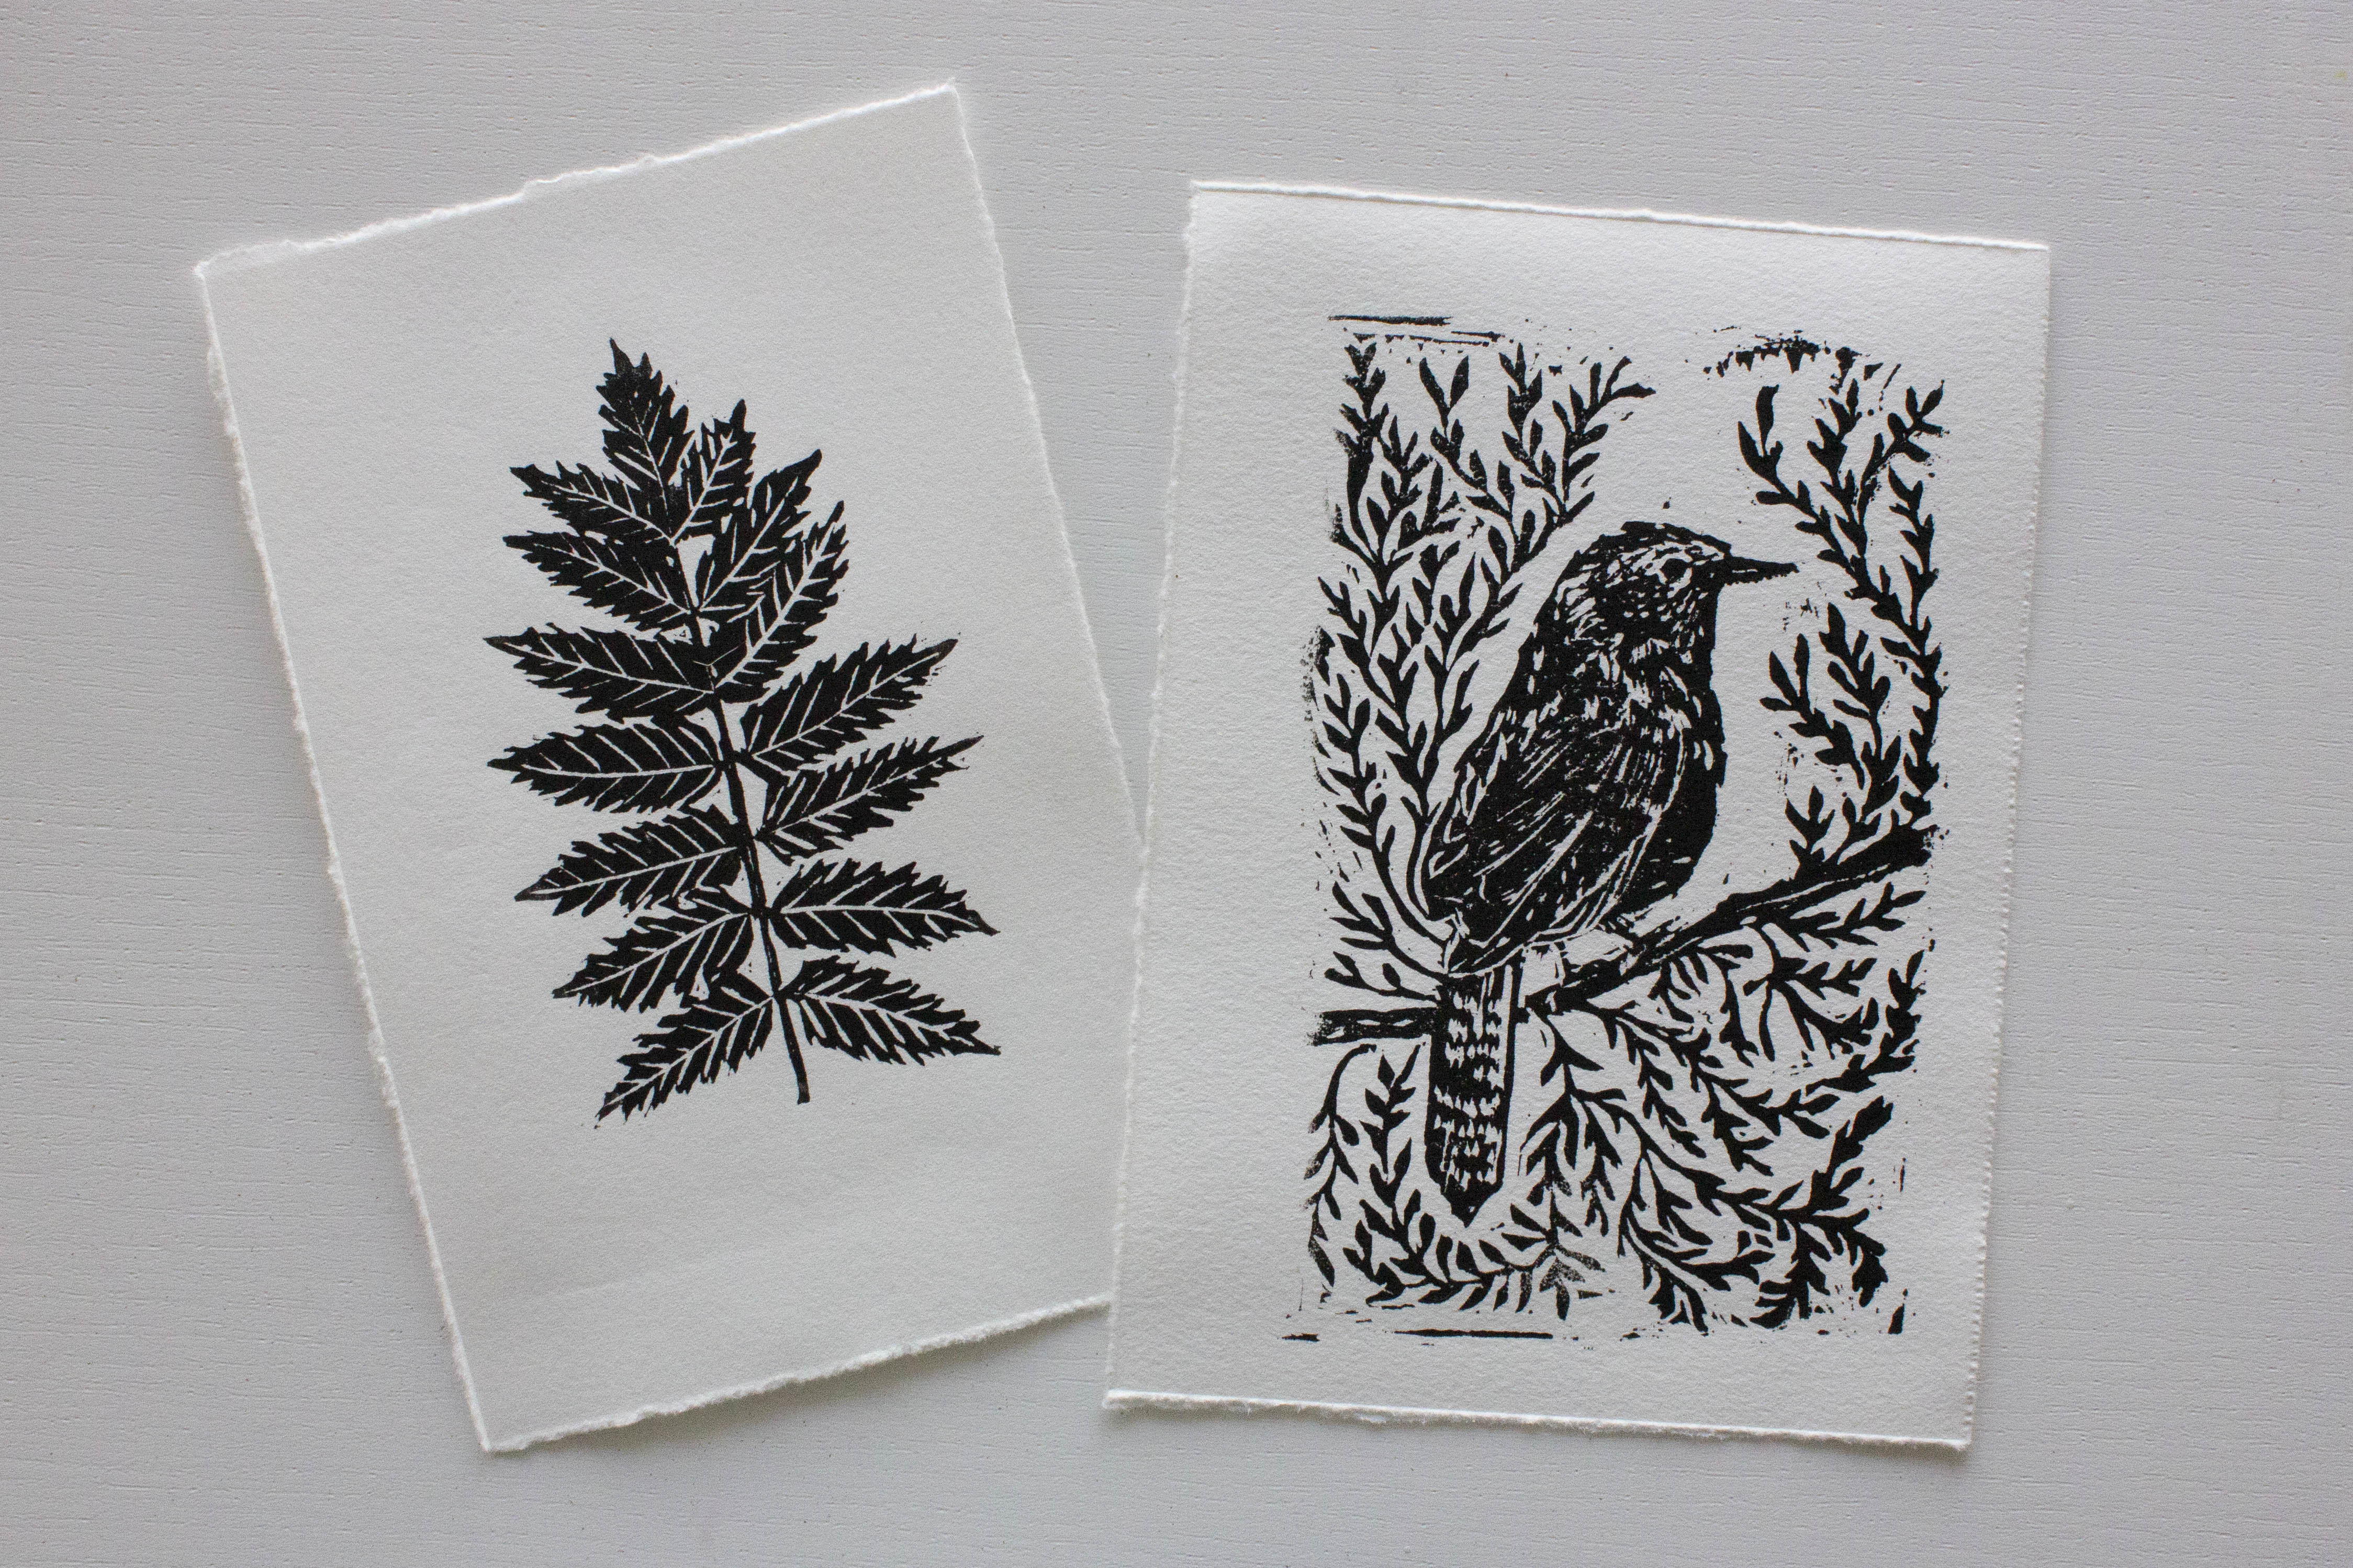 A photograph of two black-and-white art prints: a leaf on the left and a bird on a branch on the right